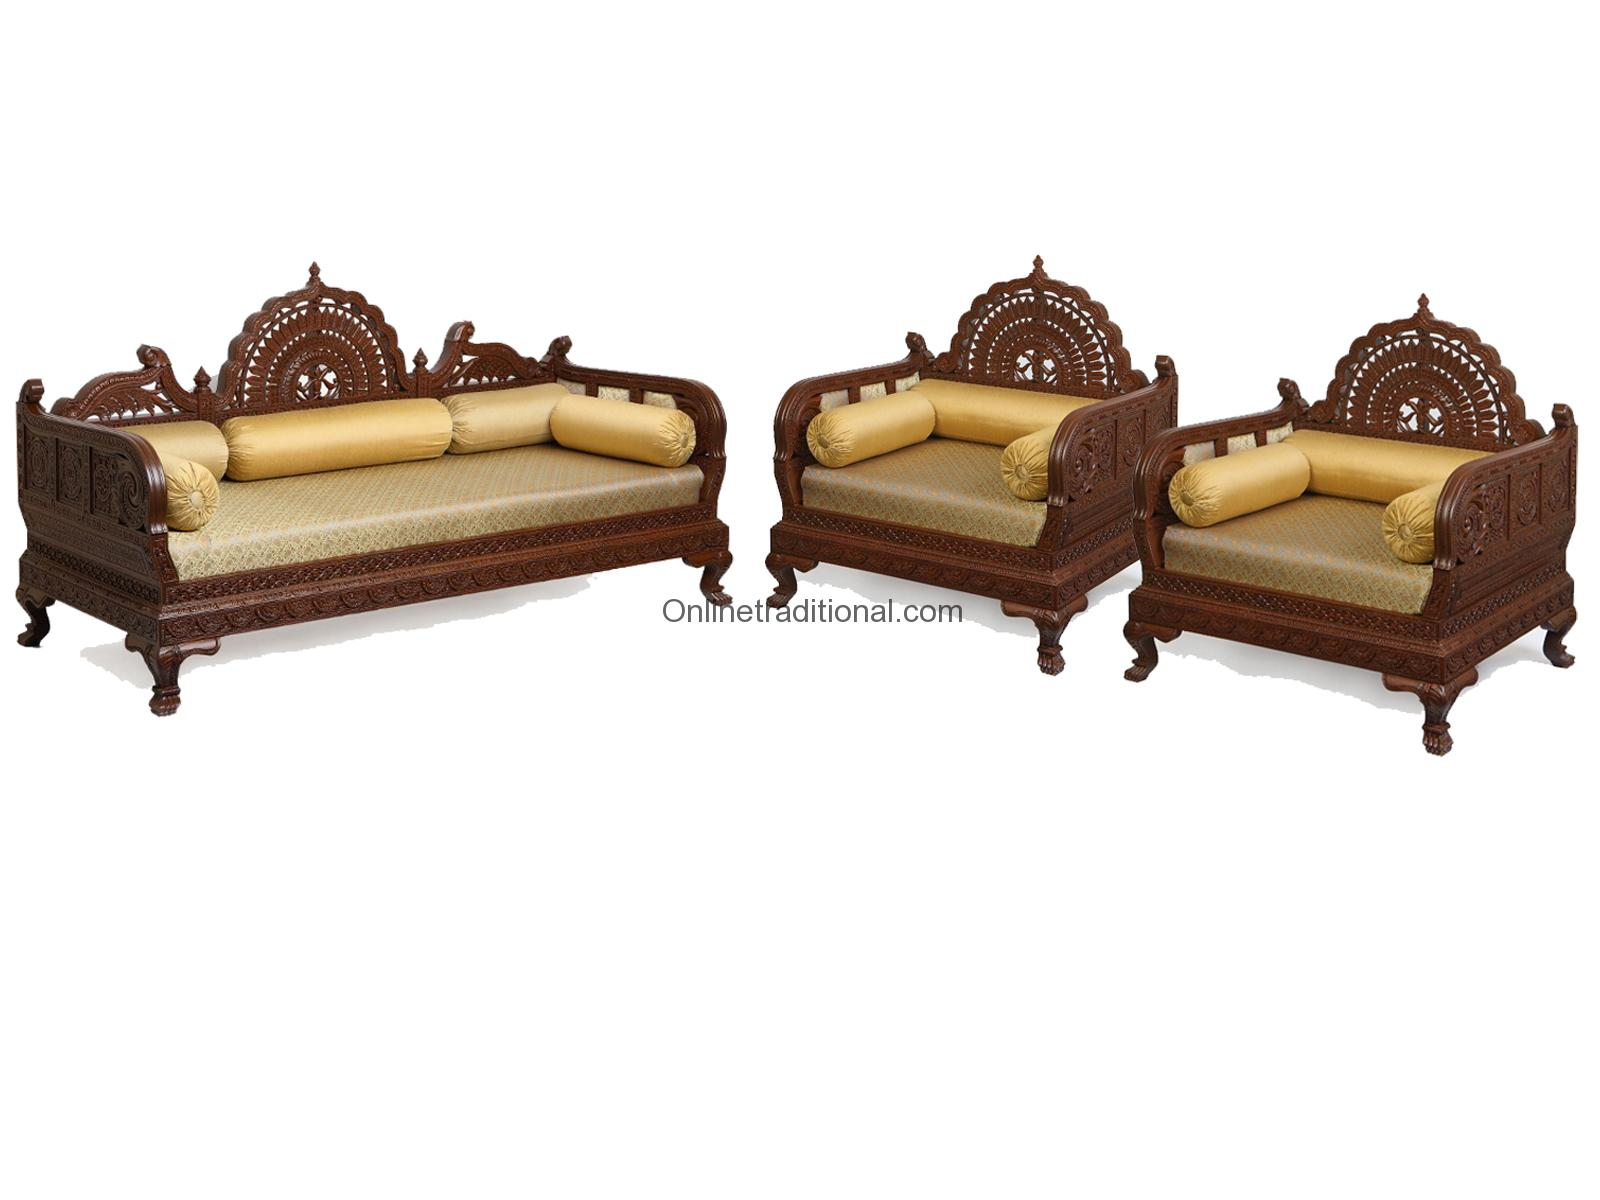 Design Carving Teak Wooden Maharaja Sofa Sets Pearl Handicrafts